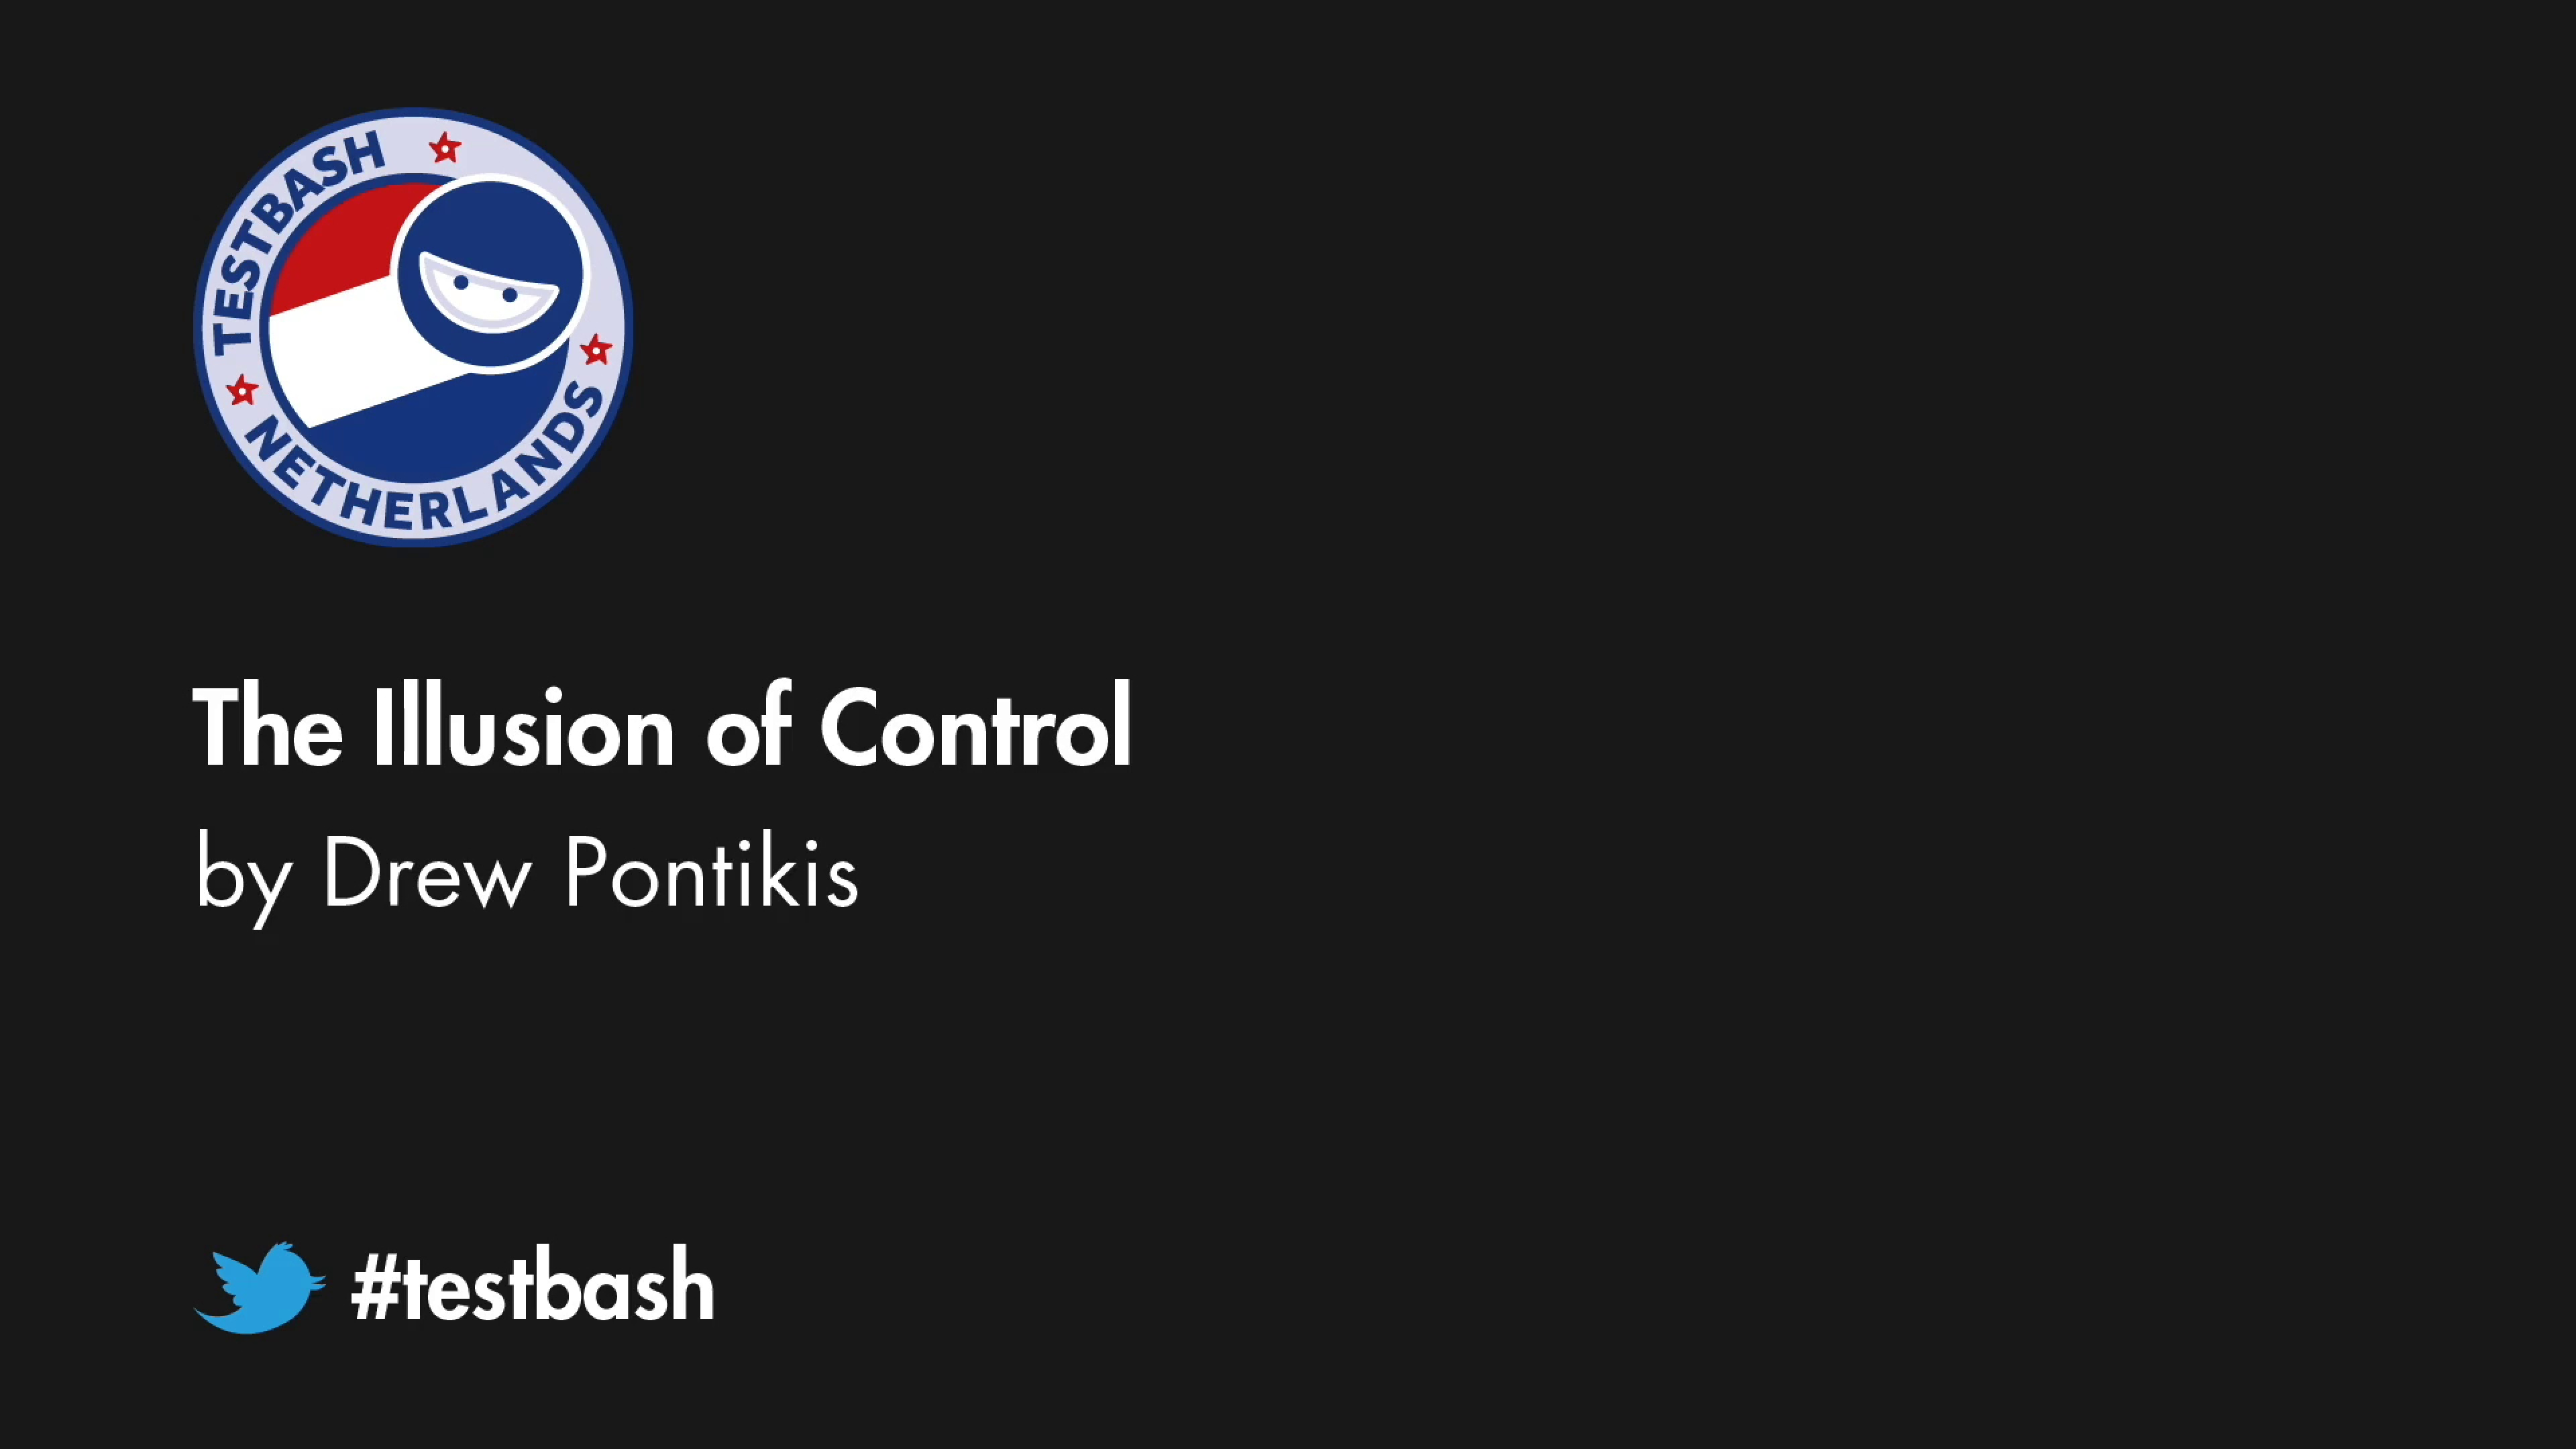 The Illusion of Control - Drew Pontikis